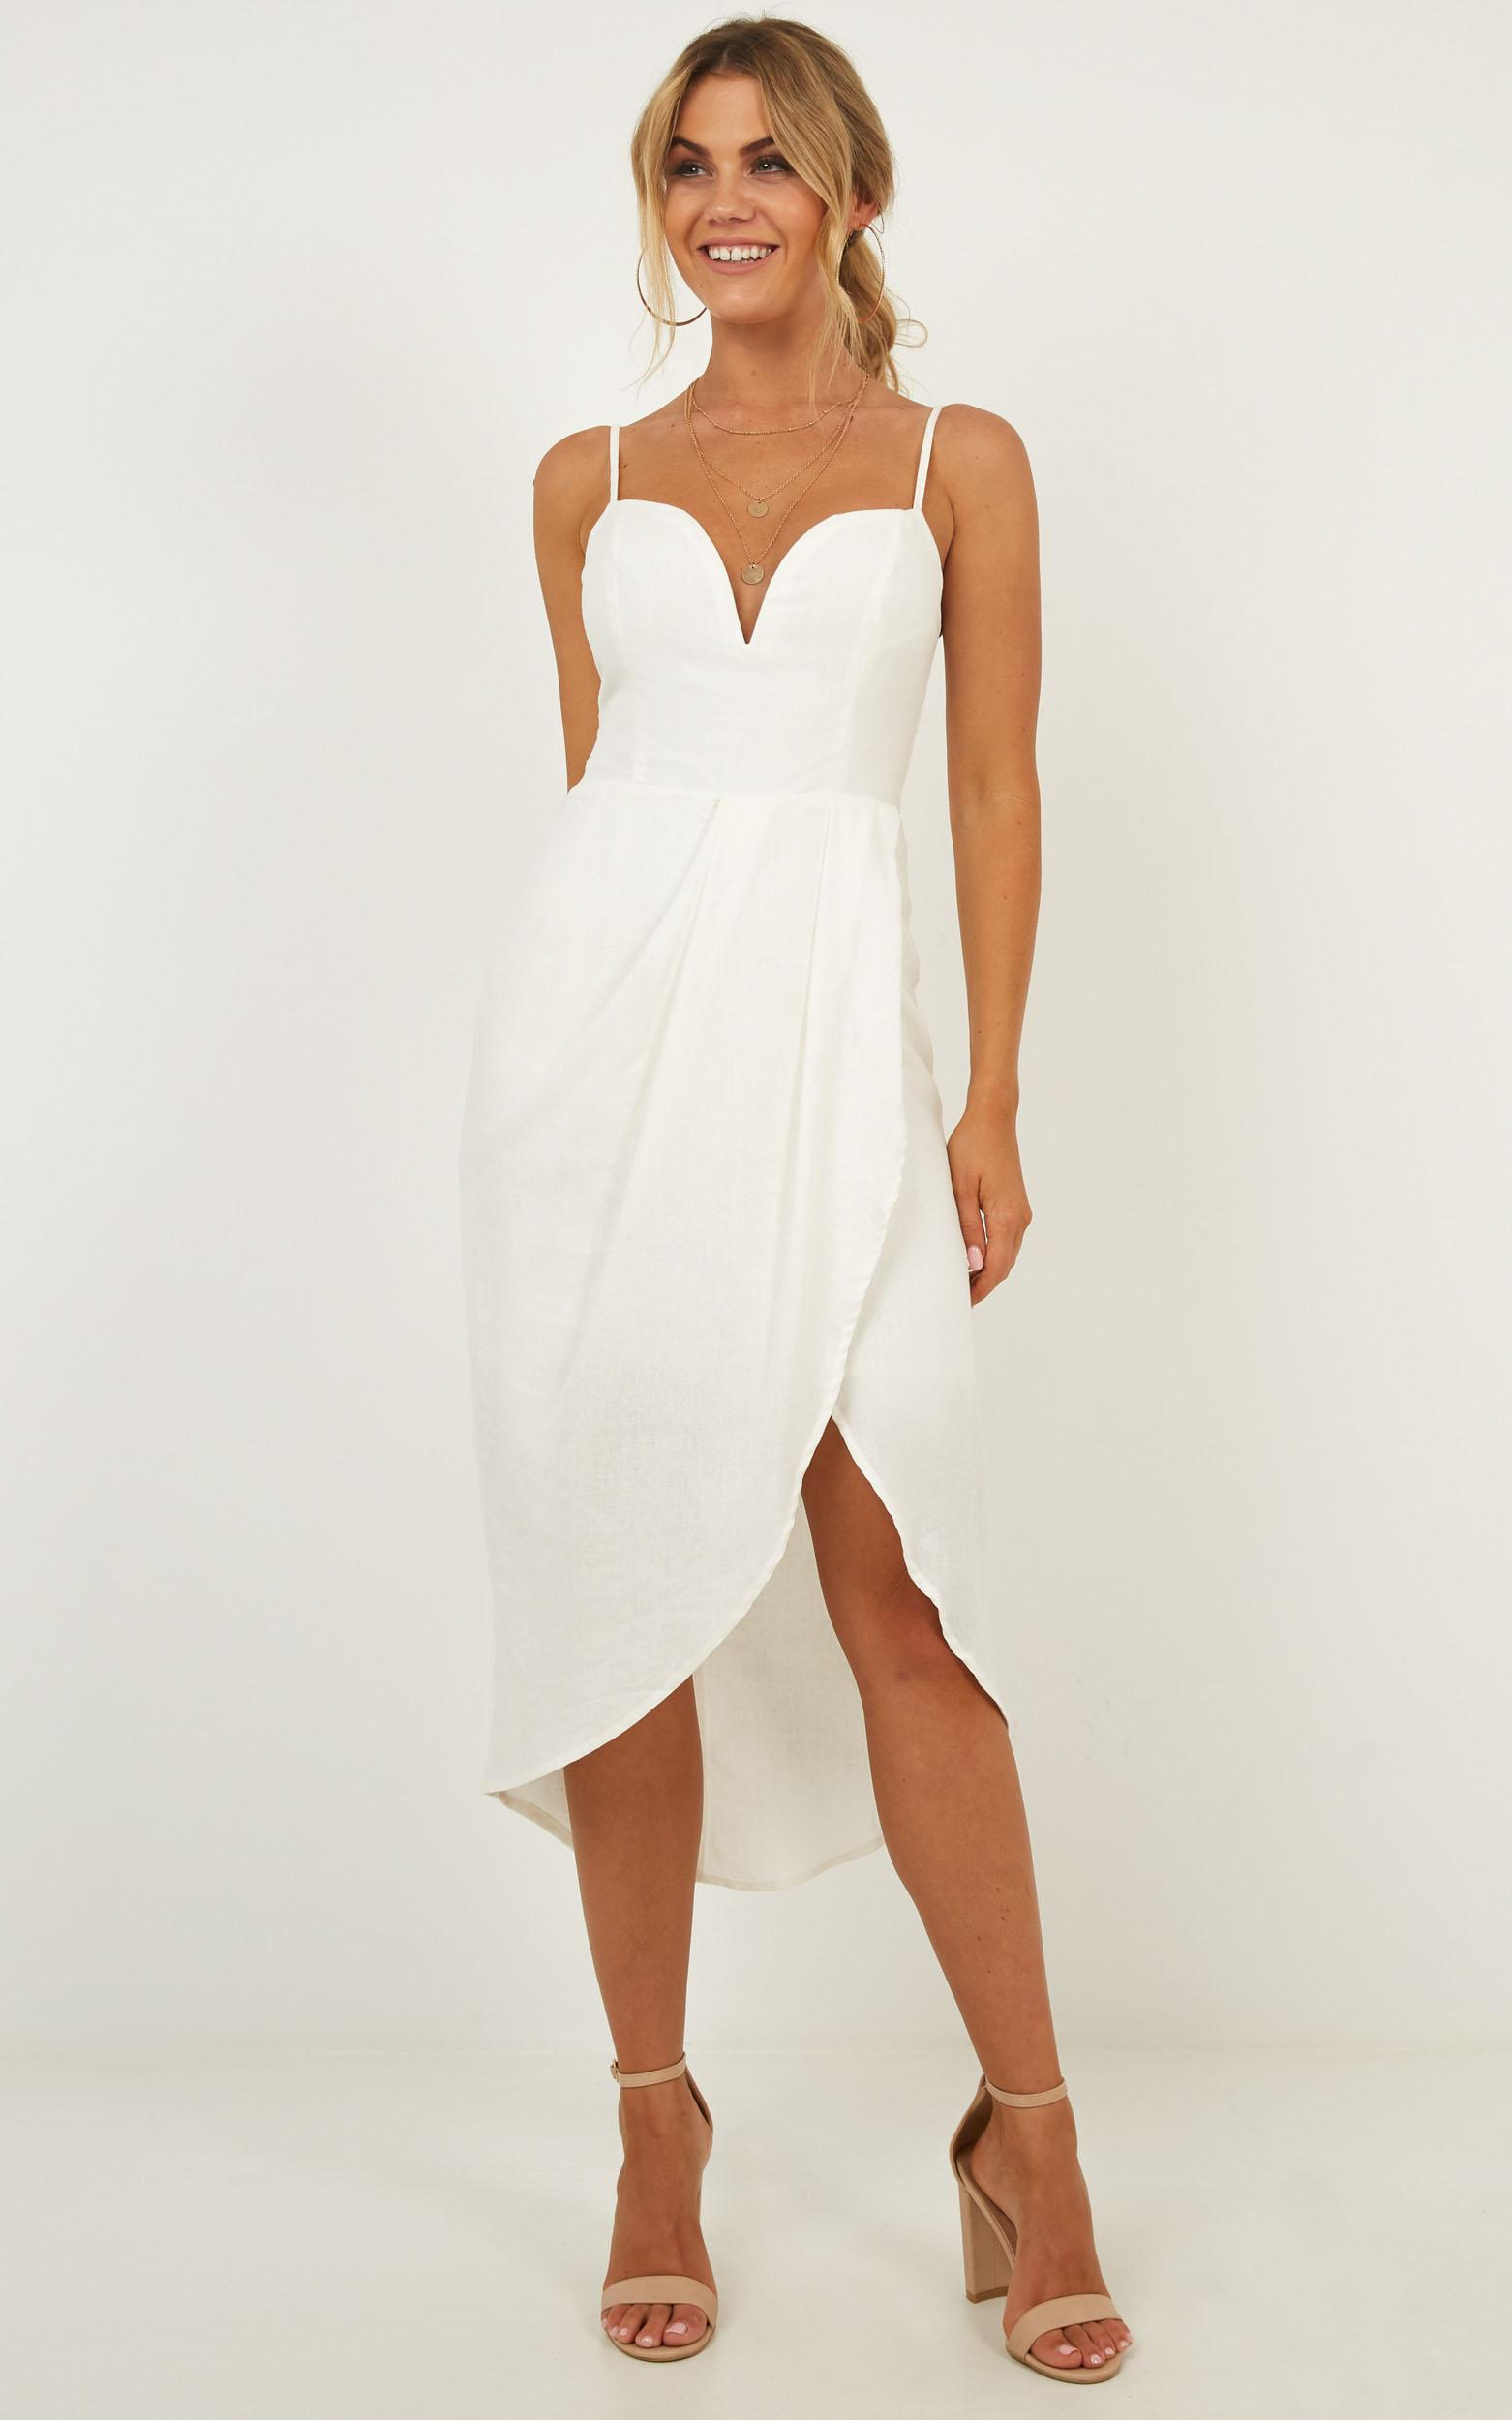 Darling Listen Dress In white - 12 (L), White, hi-res image number null